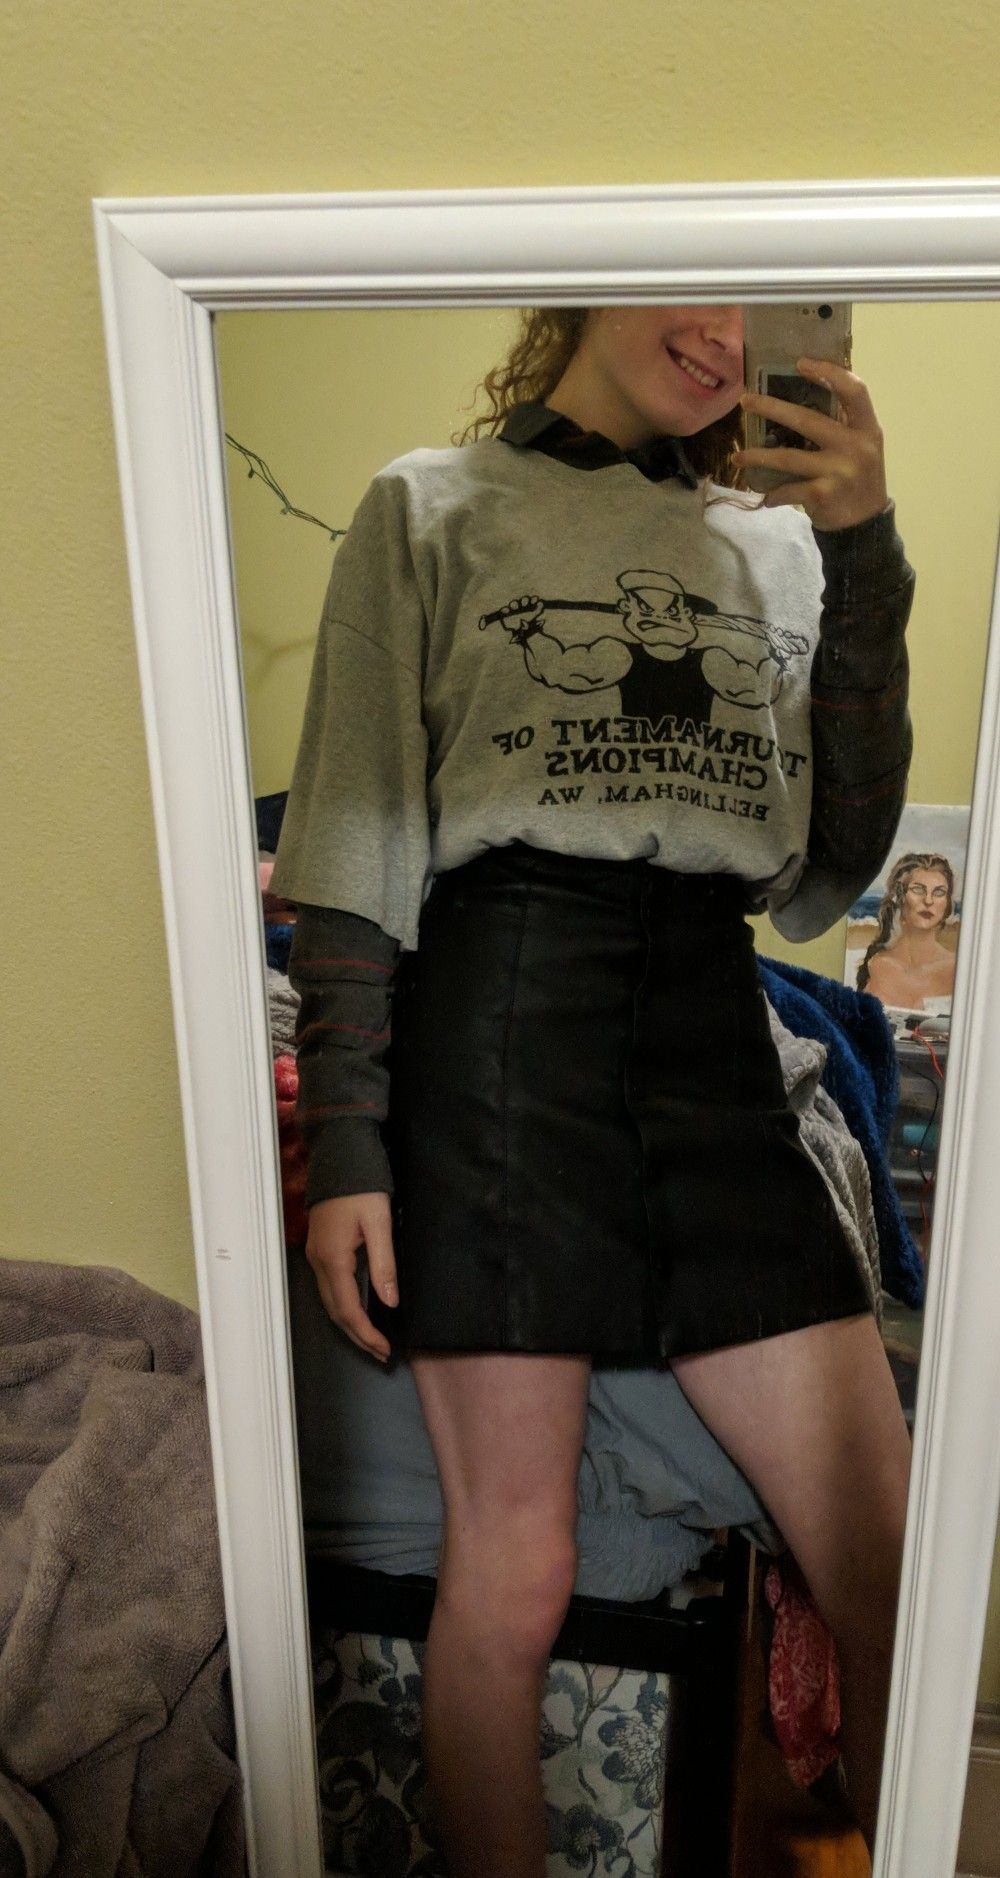 Outfits Grunge Oversized Egirl Tumblr Aesthetic Blackskirt Leatherskirt Vintage Thrifting Outfits Fashion Leather Skirt